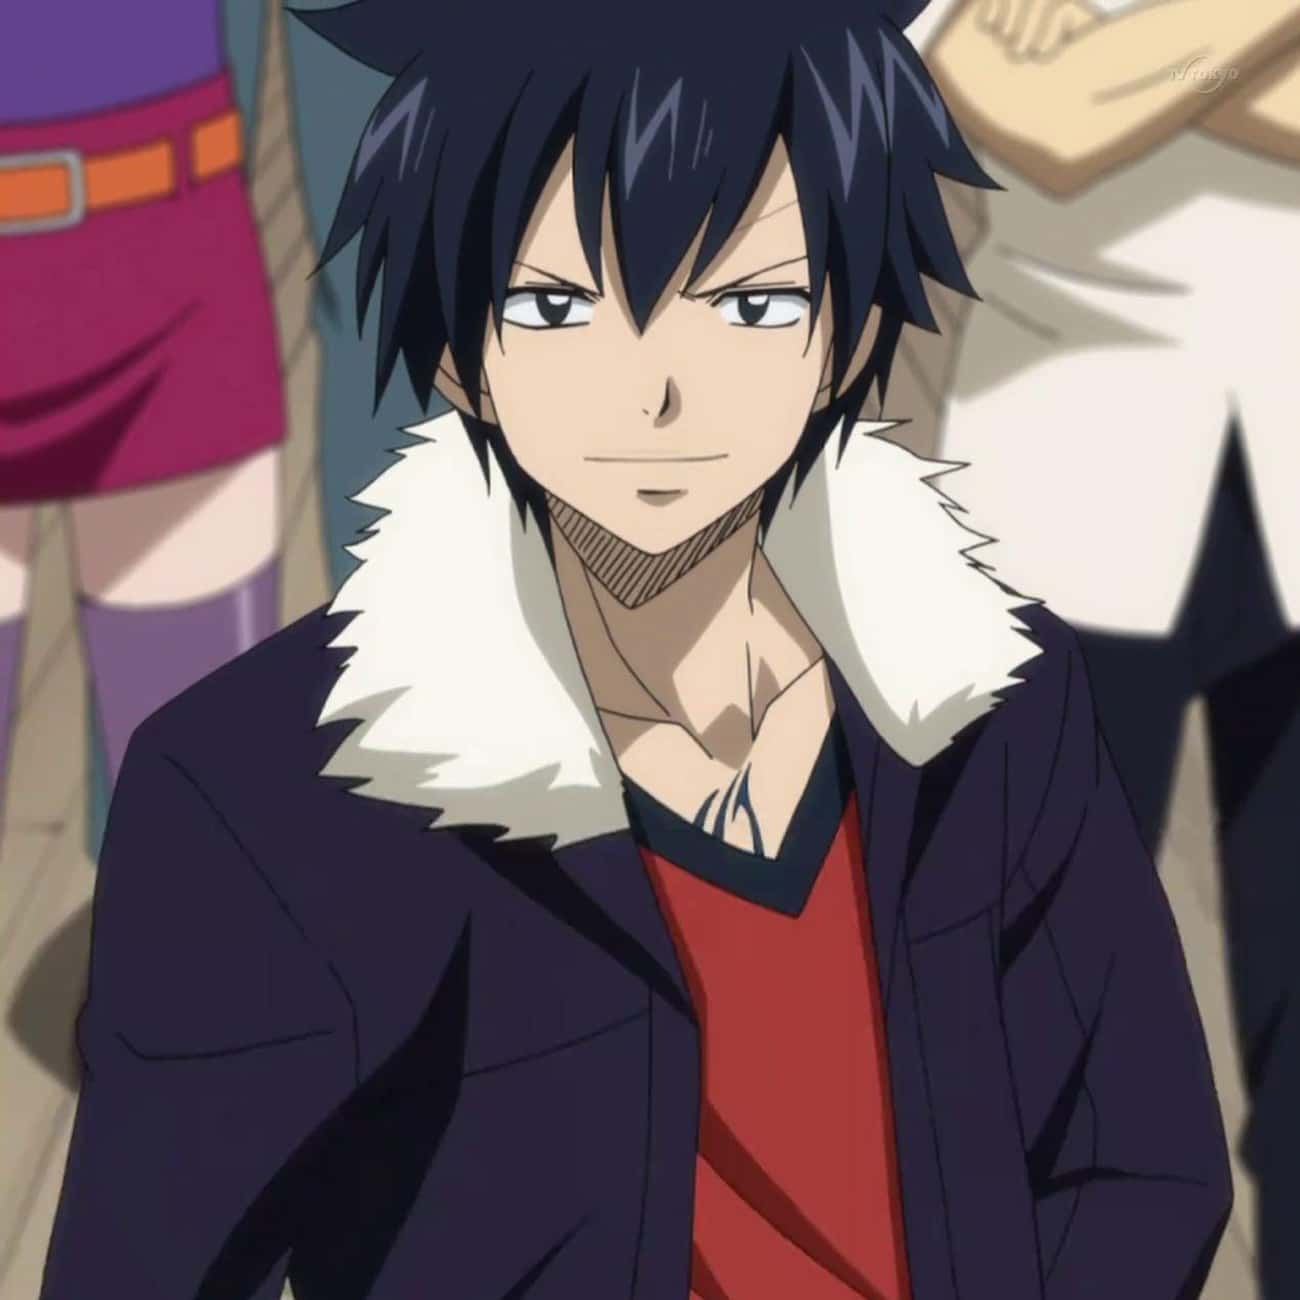 Do What I Want is listed (or ranked) 4 on the list The Best Gray Fullbuster Quotes